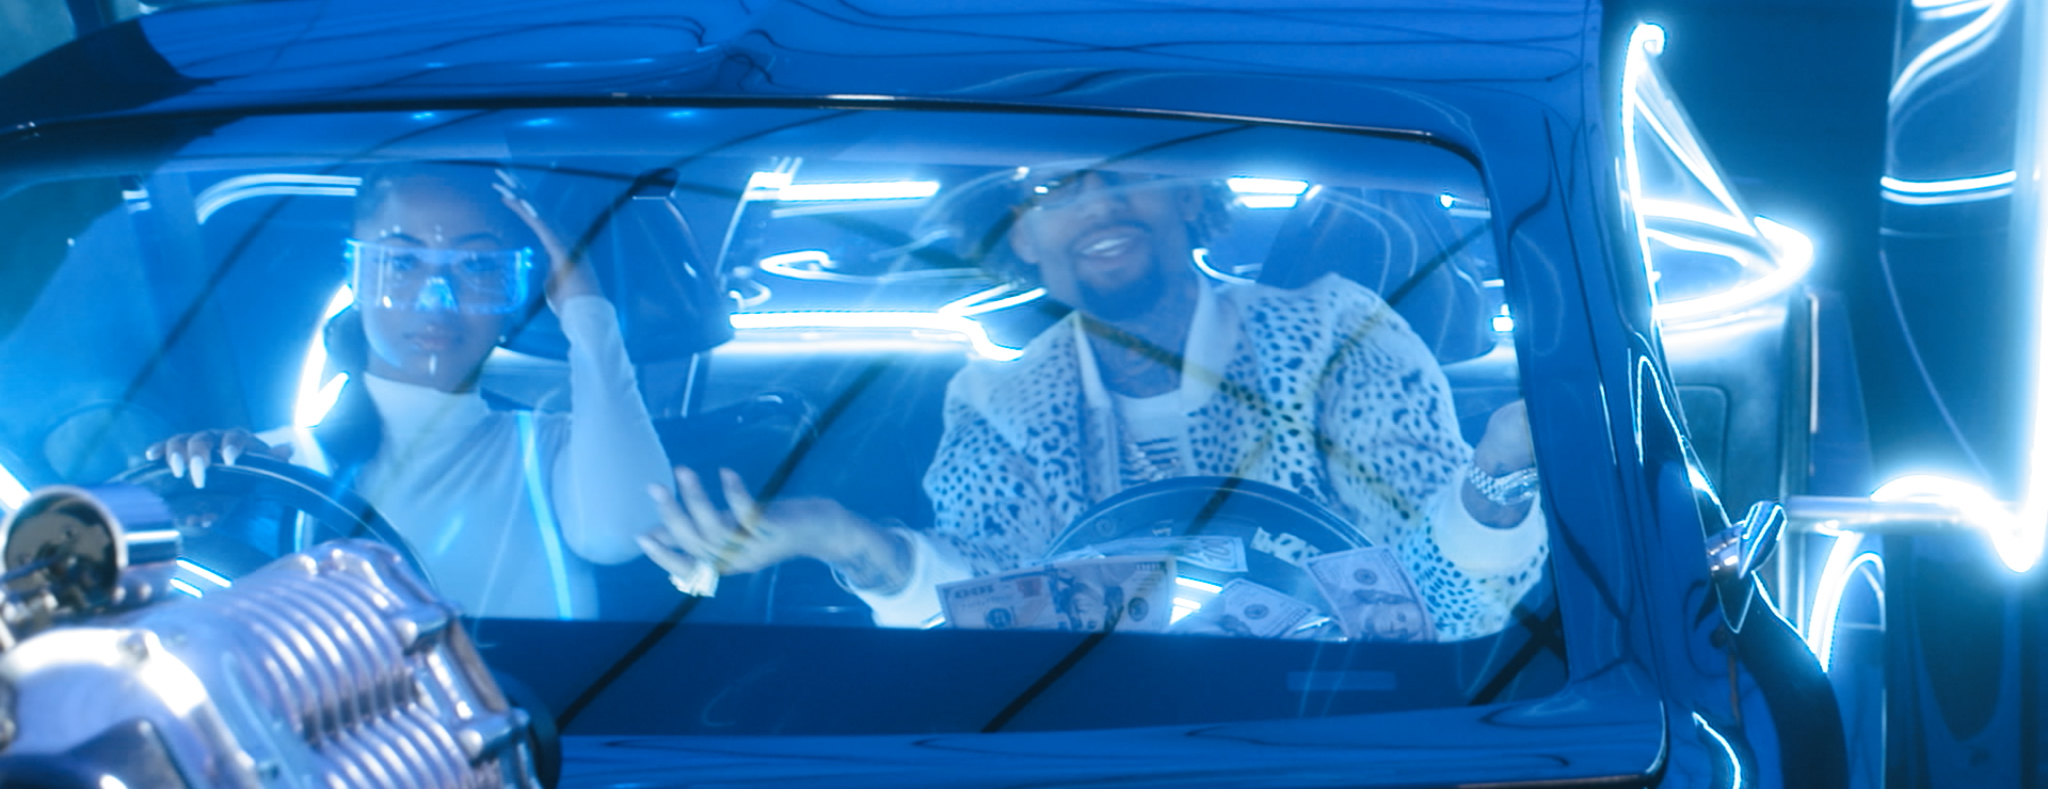 PNB ROCK FT. TEE GRIZZLEY - GO TO MARS (OFFICIAL VIDEO) - DIRECTED BY MAJIK FILMS.mov.00_00_28_22.Still027.jpg